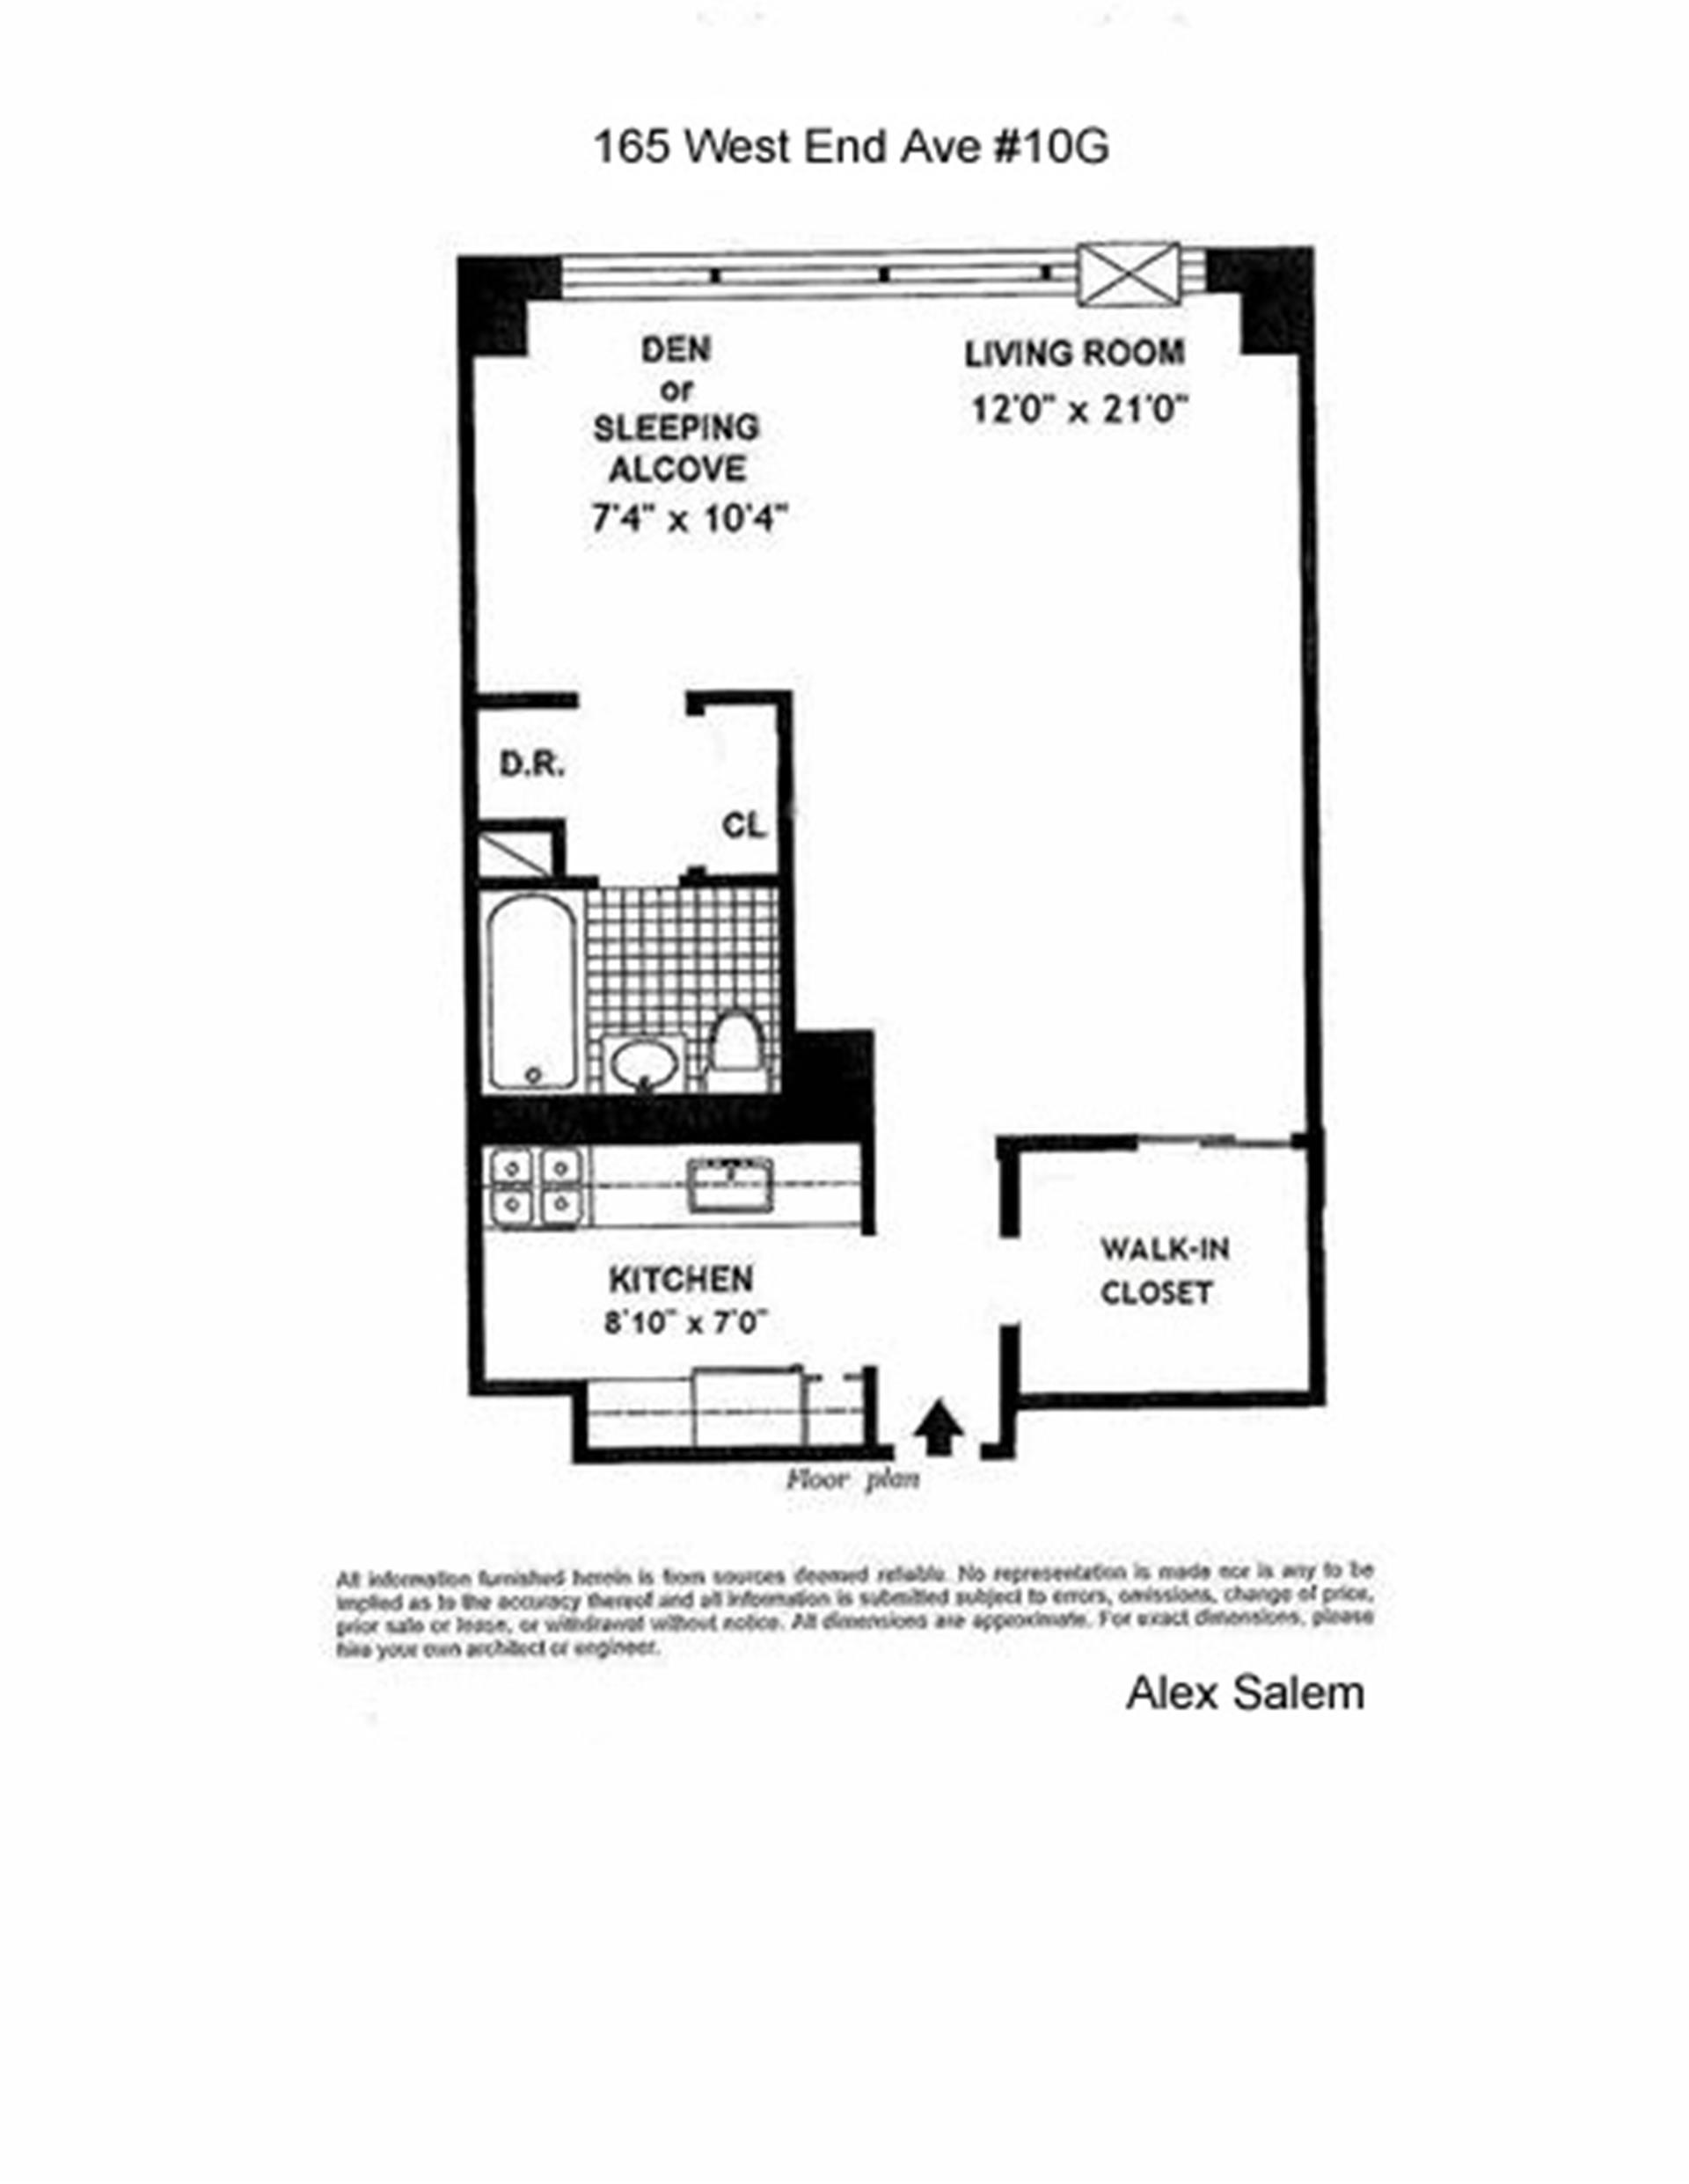 Floor plan of LINCOLN TOWERS, 165 West End Avenue, 10G - Upper West Side, New York